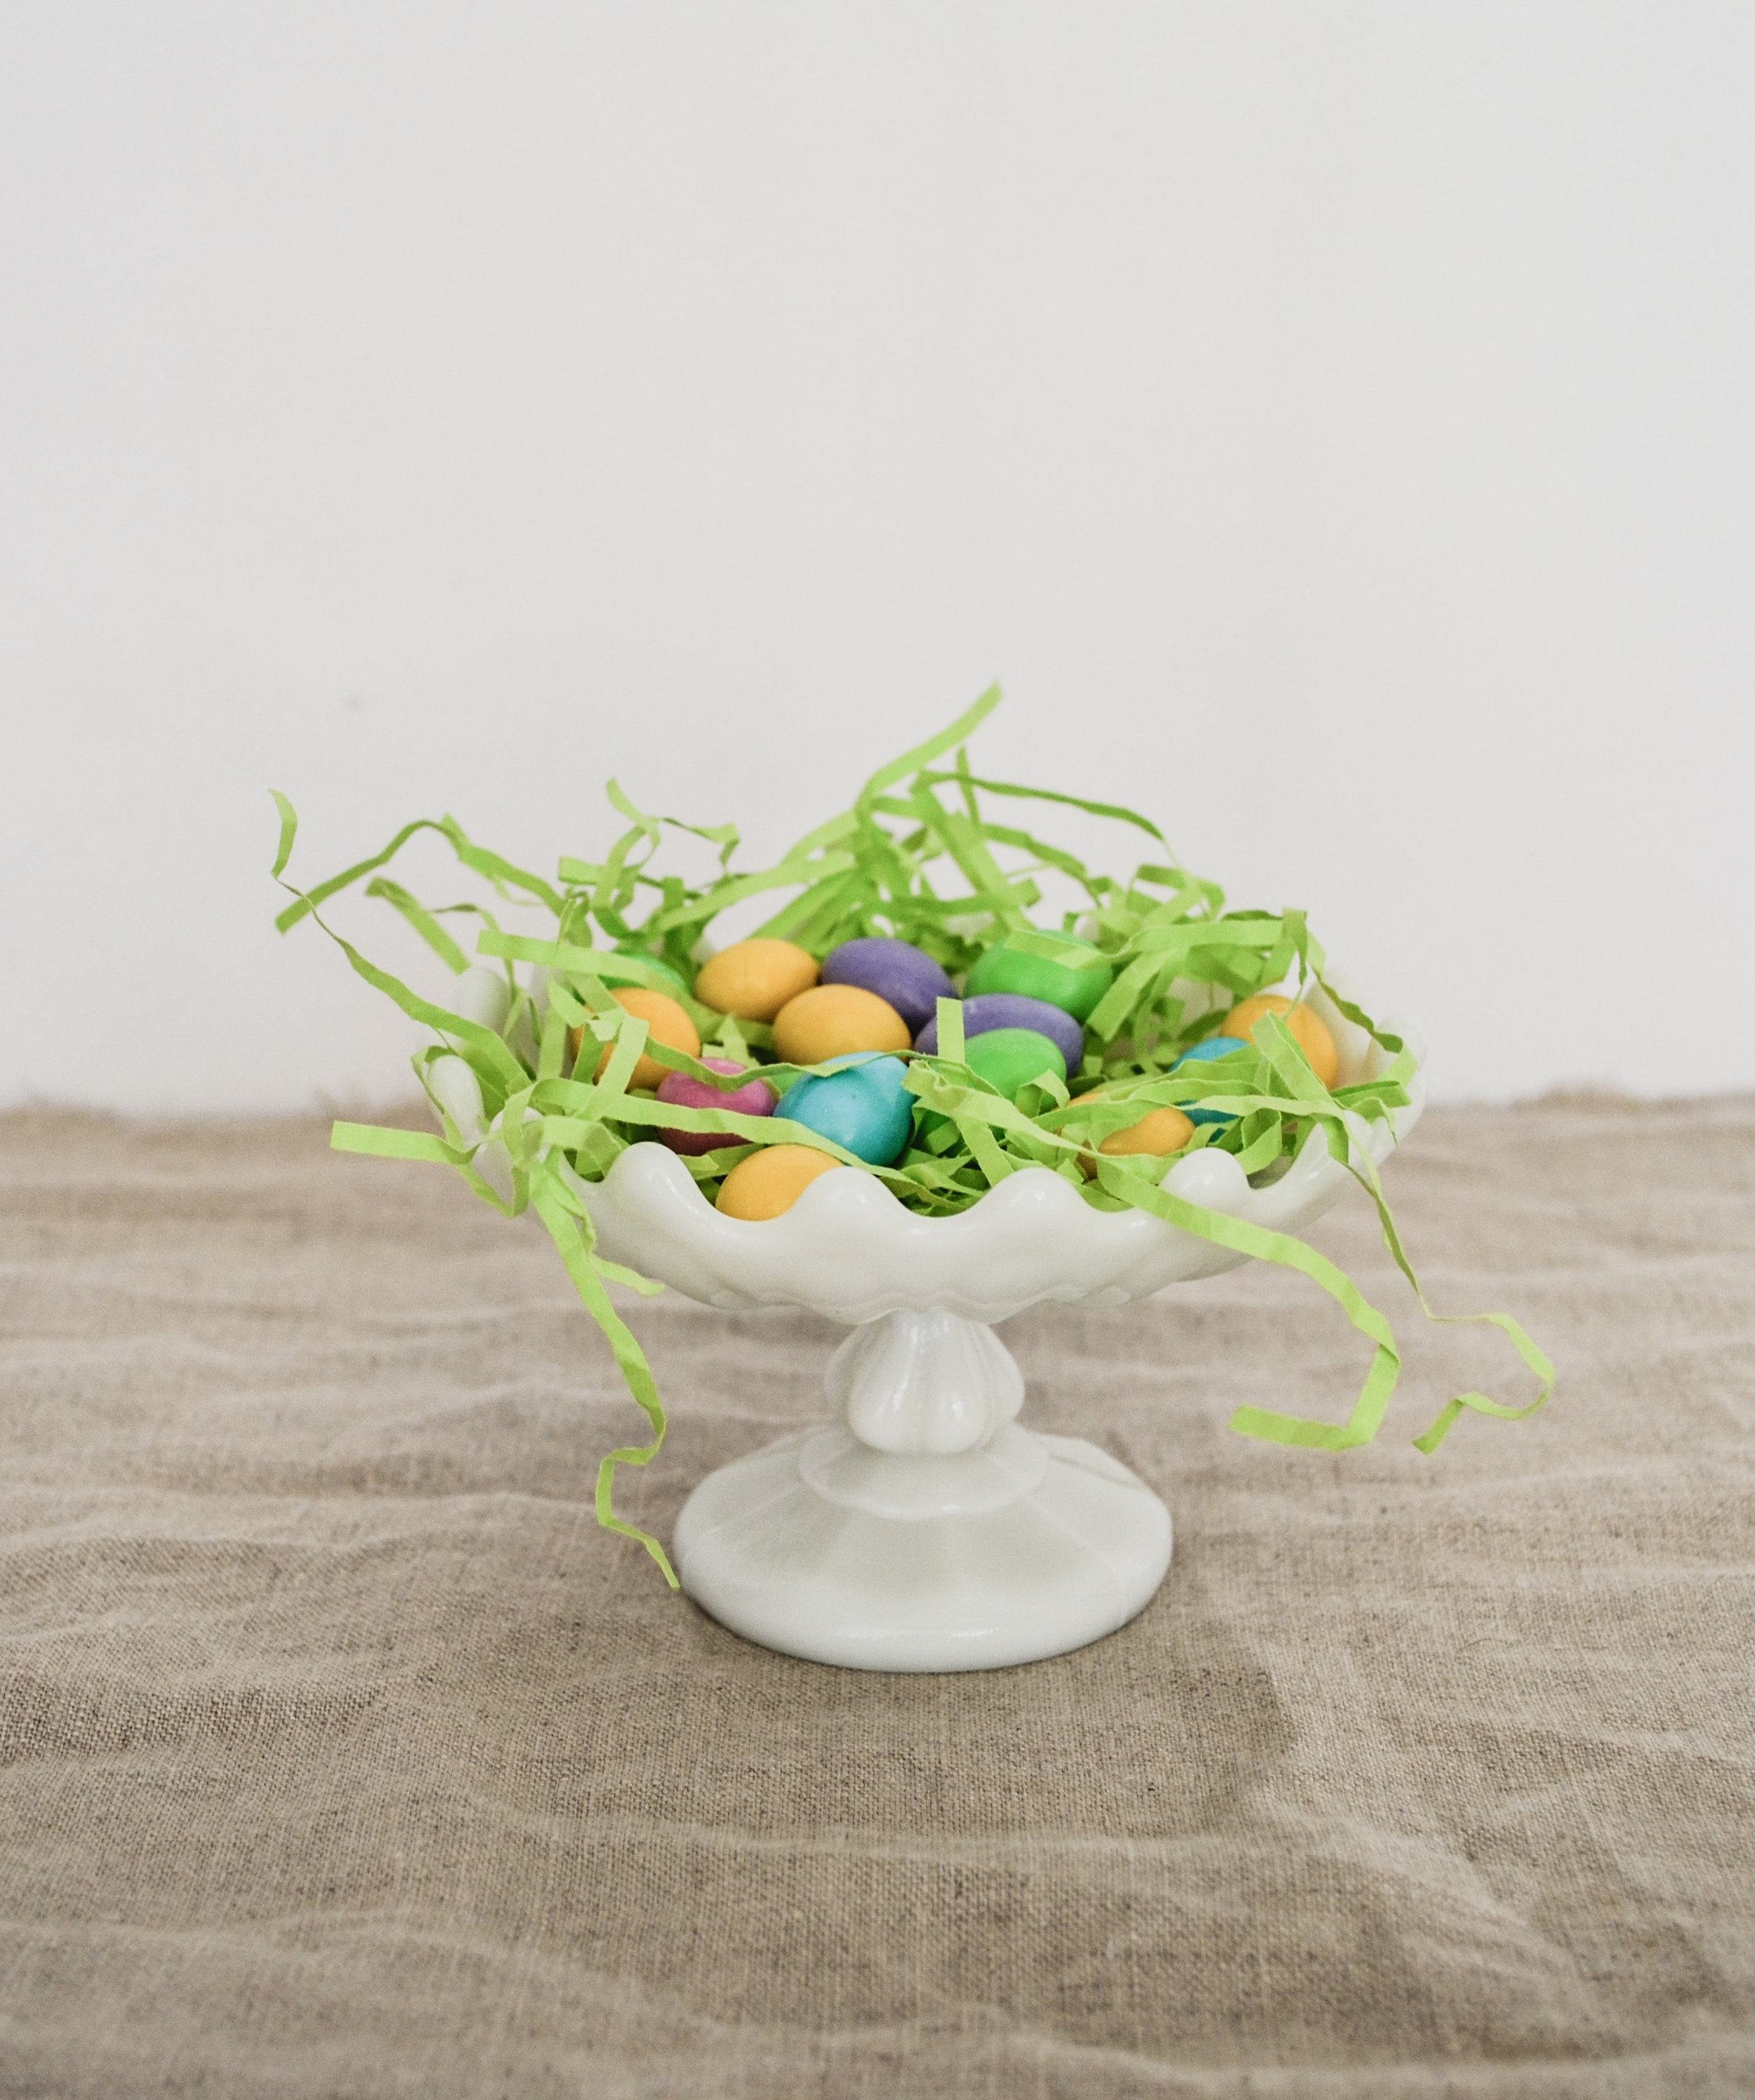 candy egg dish.jpg